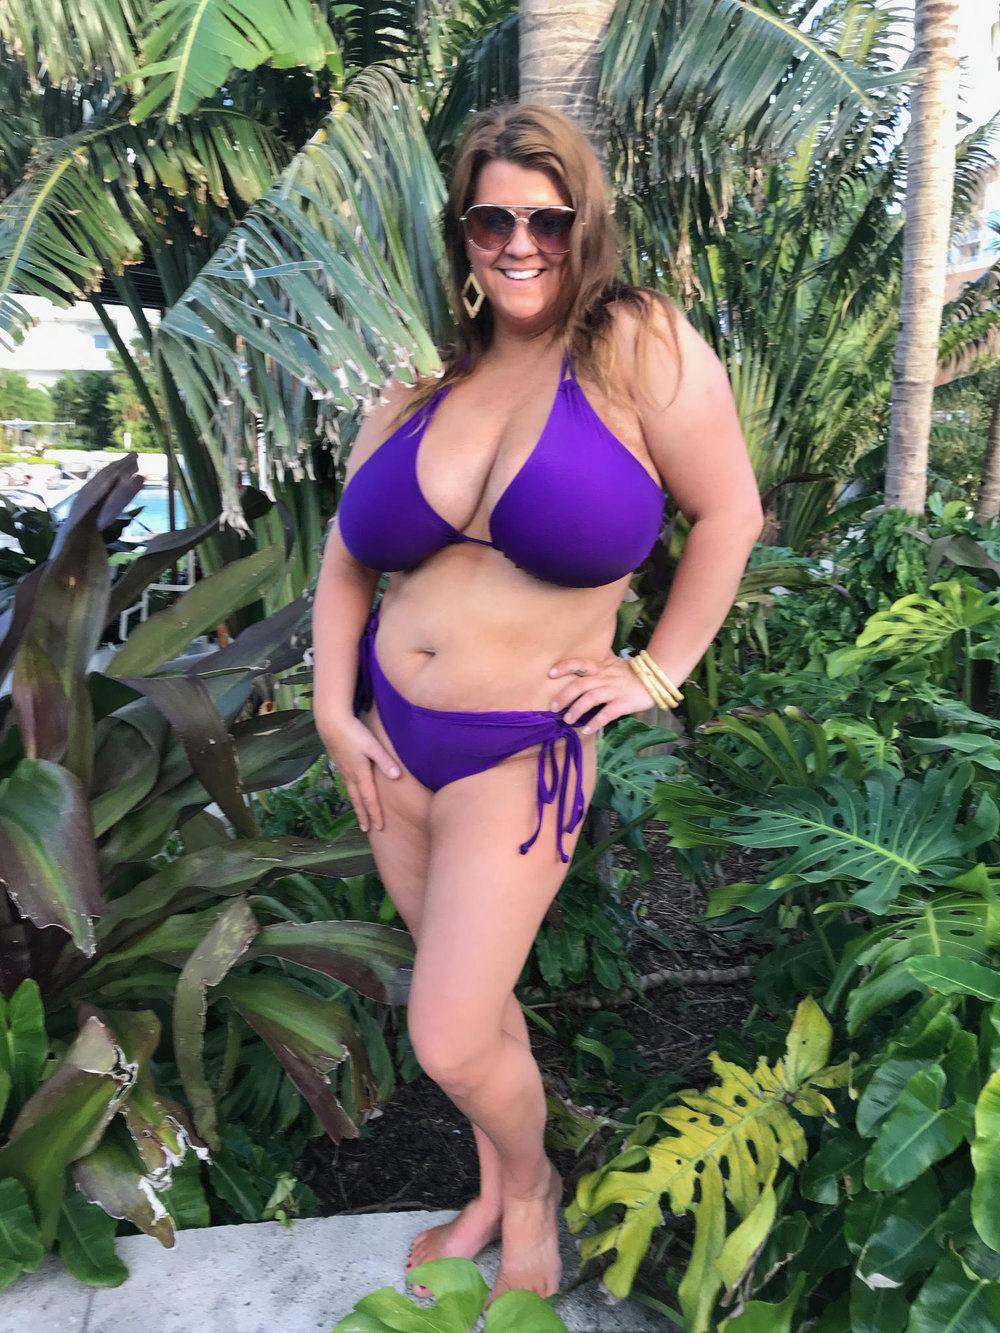 Snap up the last of our PURPLE top and bottoms here:  www.curvybeach.com/shop